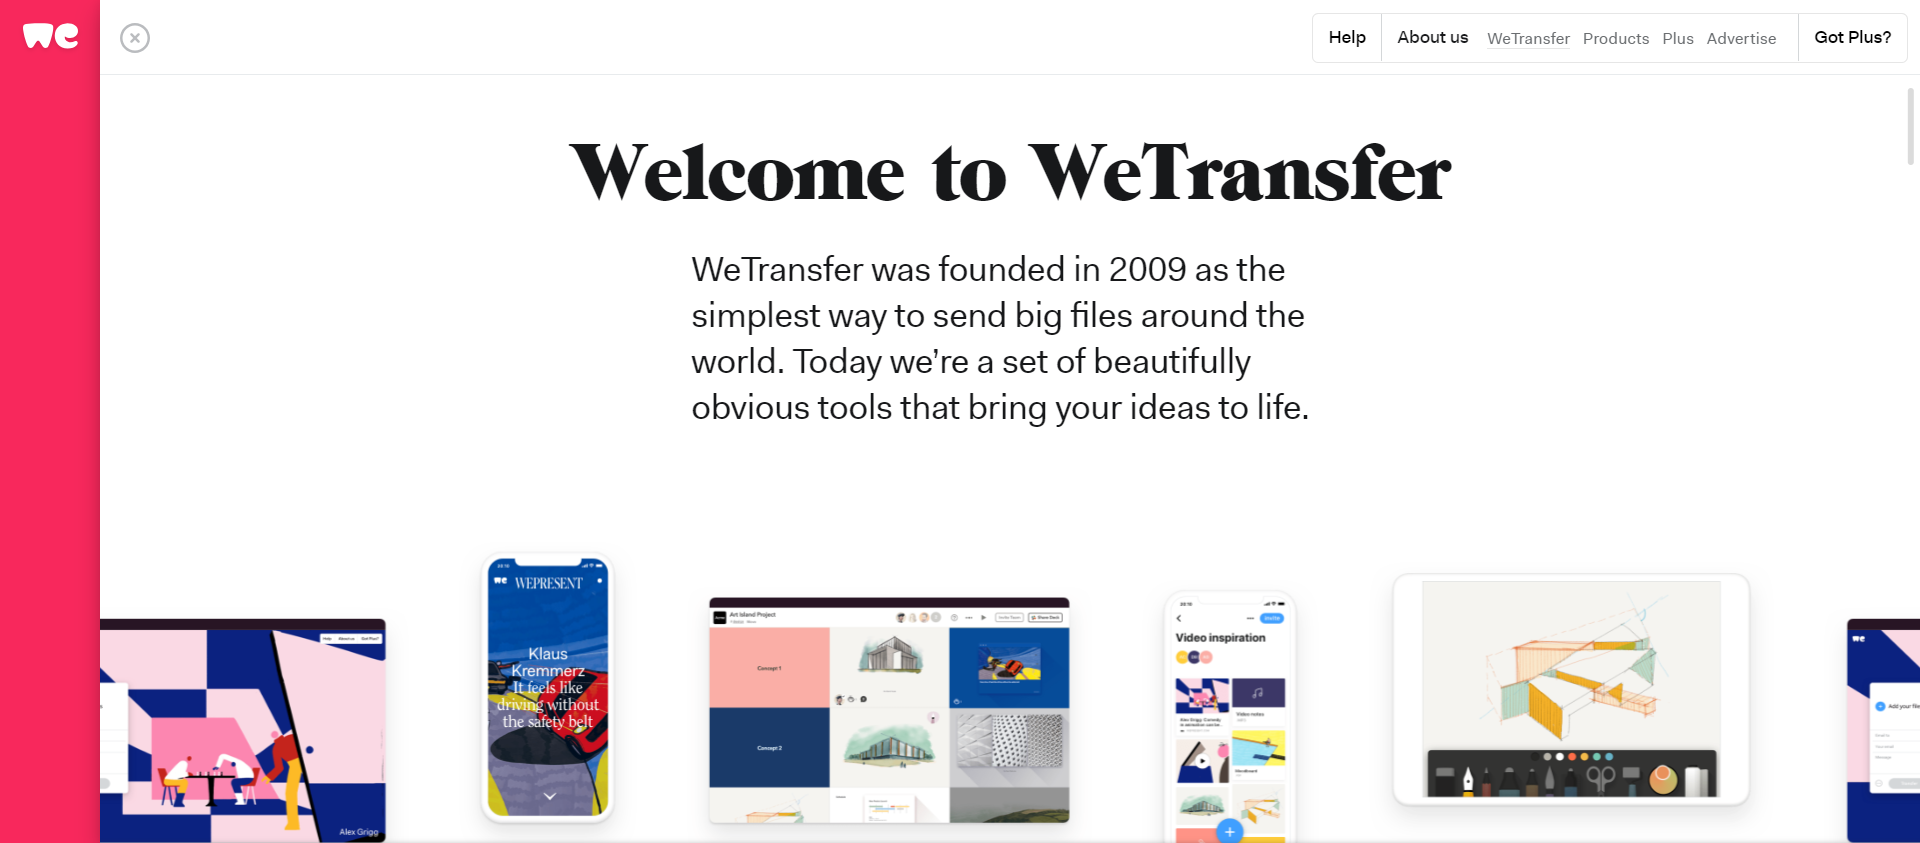 weTransfer website image